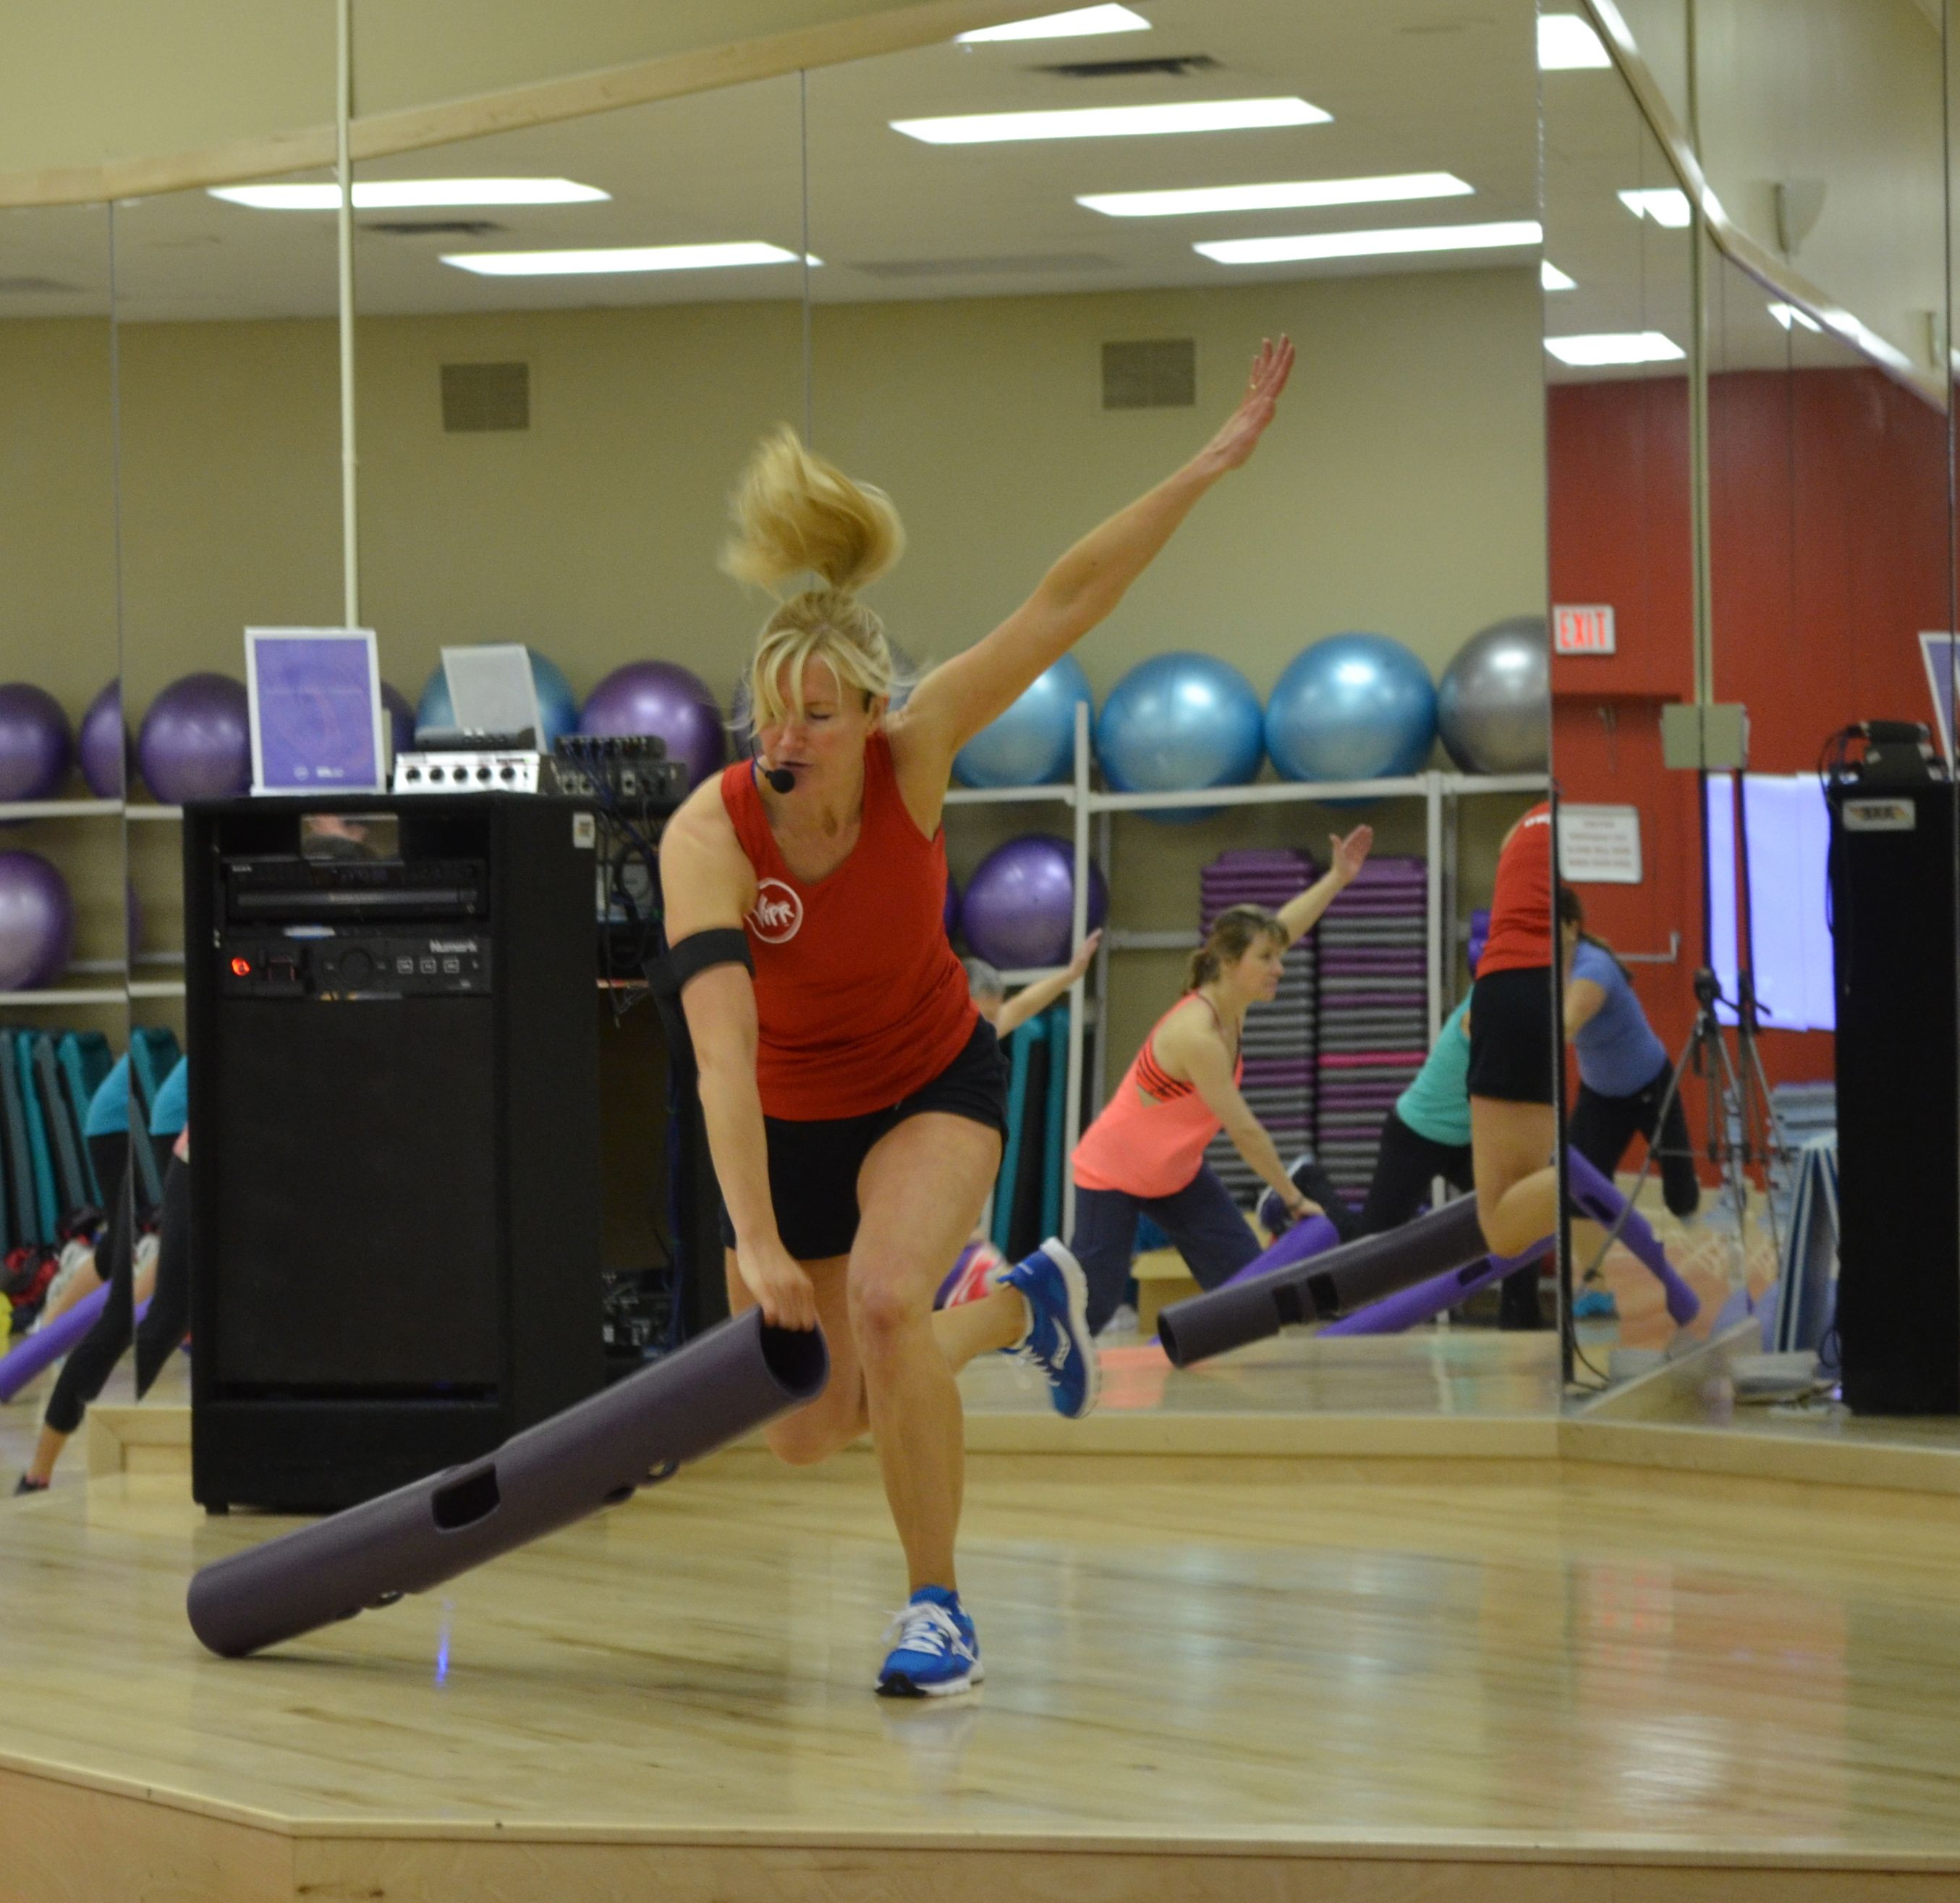 Spalady Women S Only Fitness Clubs Fitness Club Group Fitness Fitness